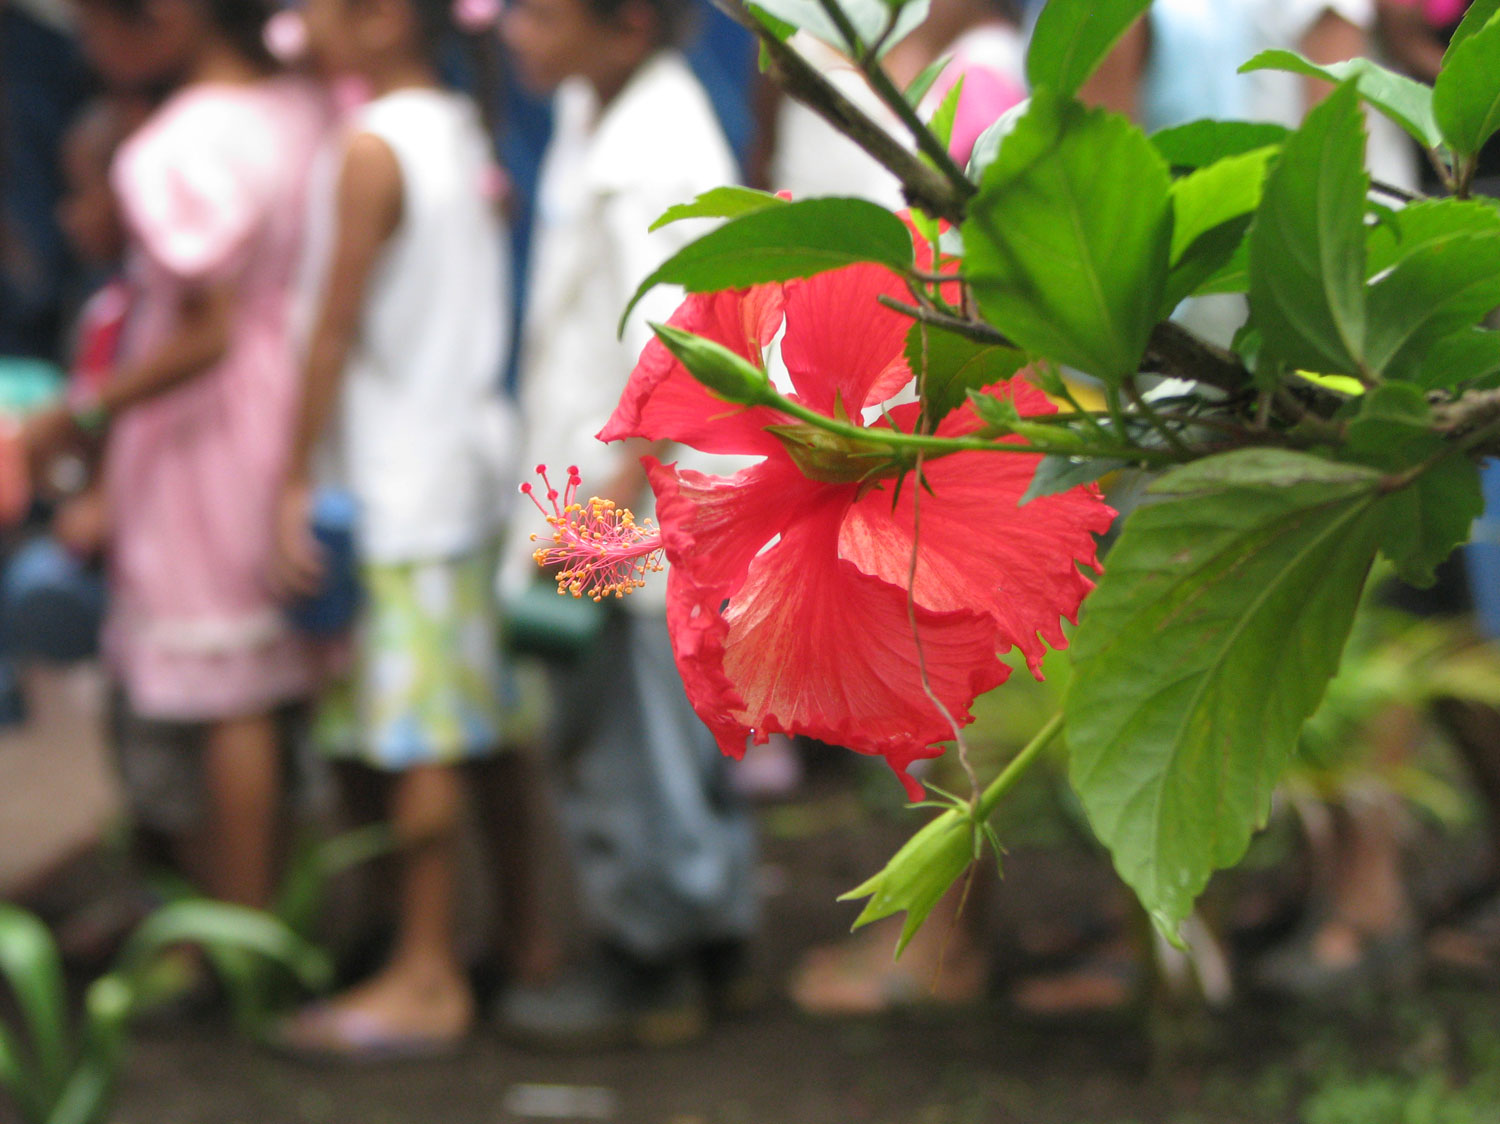 A haibiscus flower with the students in the background